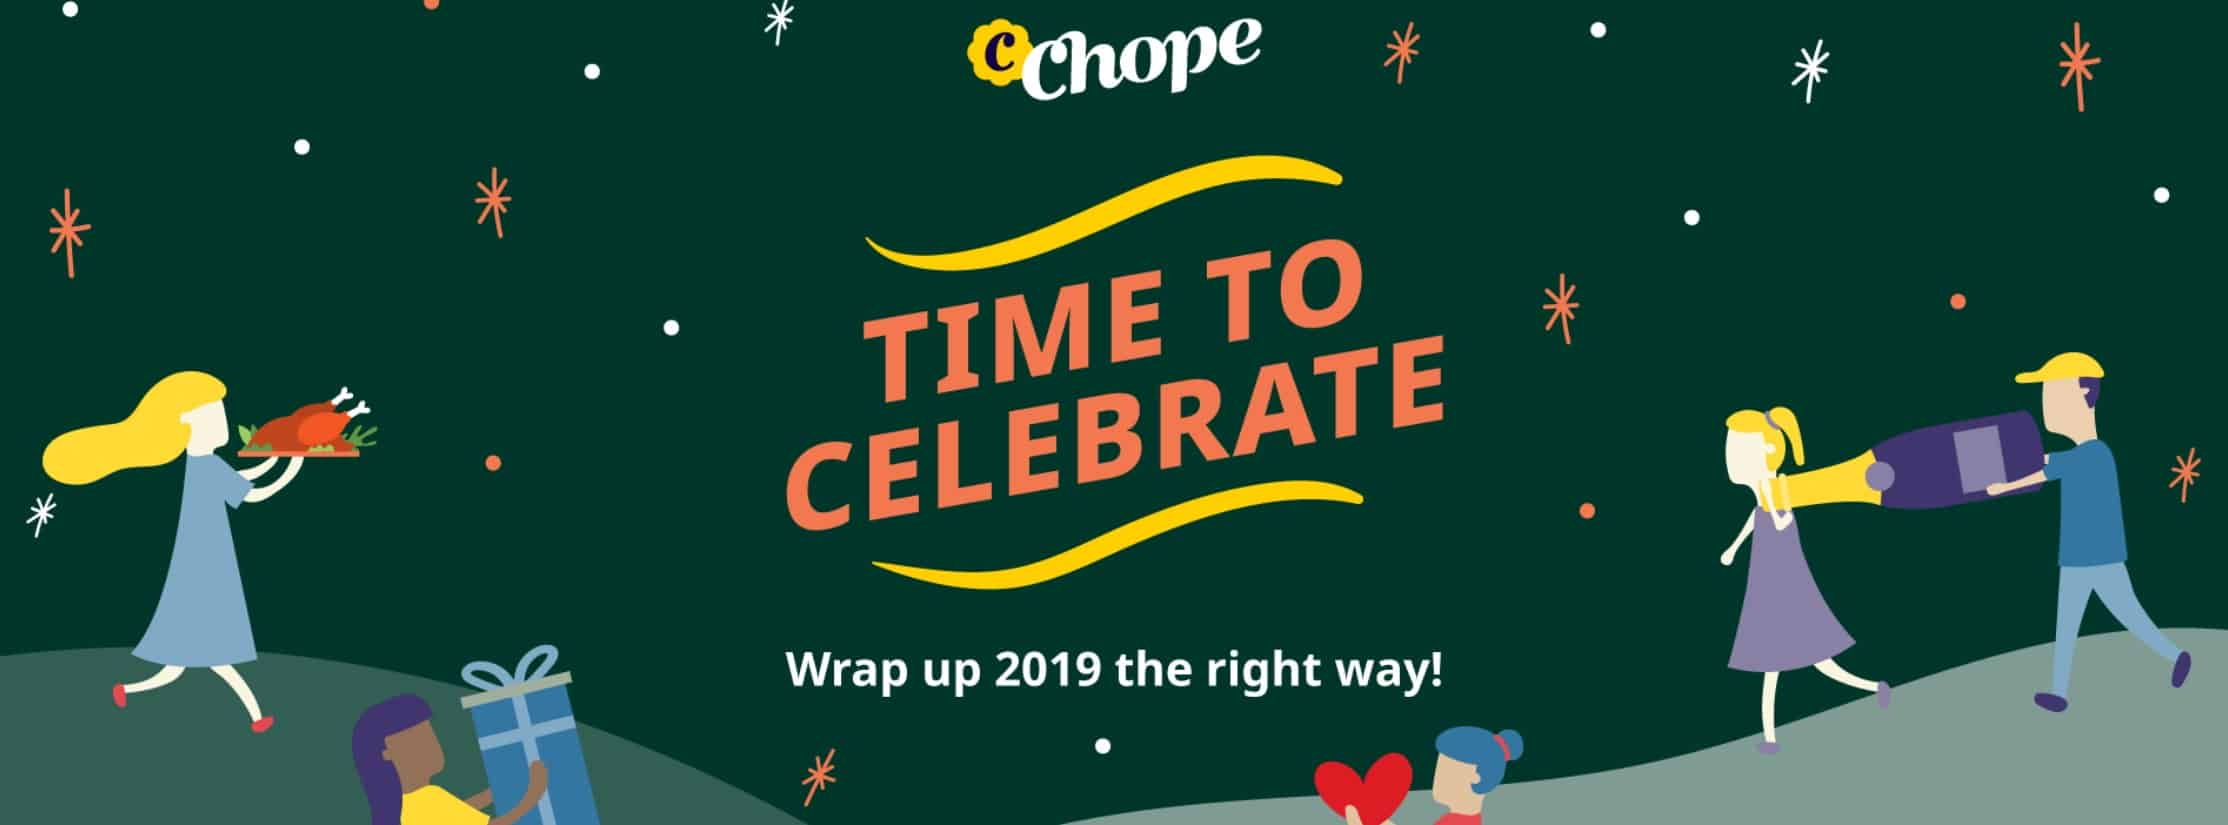 Chope Christmas Offer